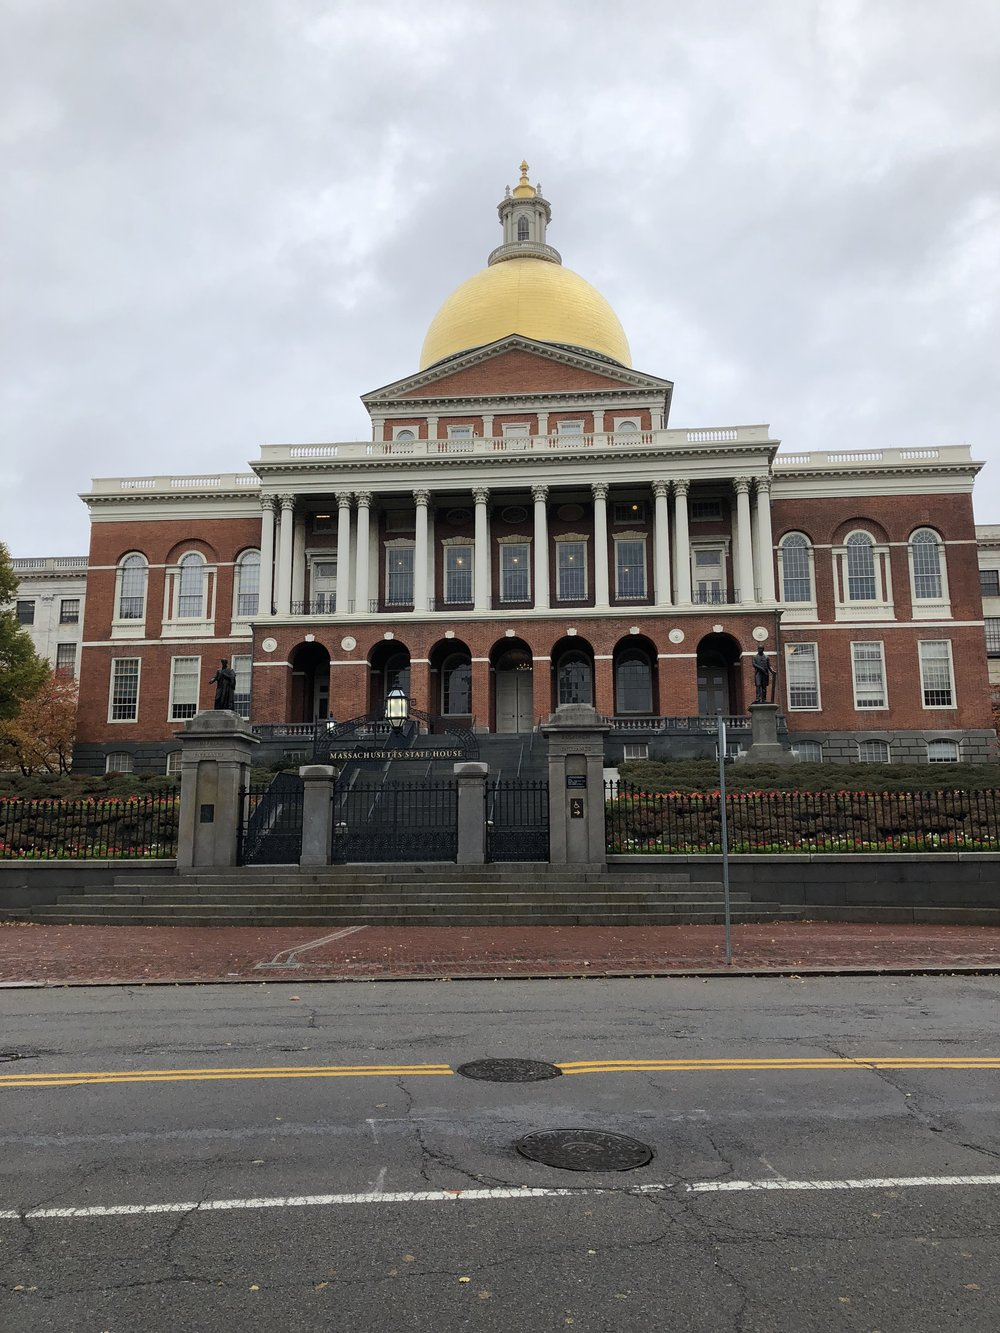 Government buildings, churches, burial grounds all make up the Freedom Trail.